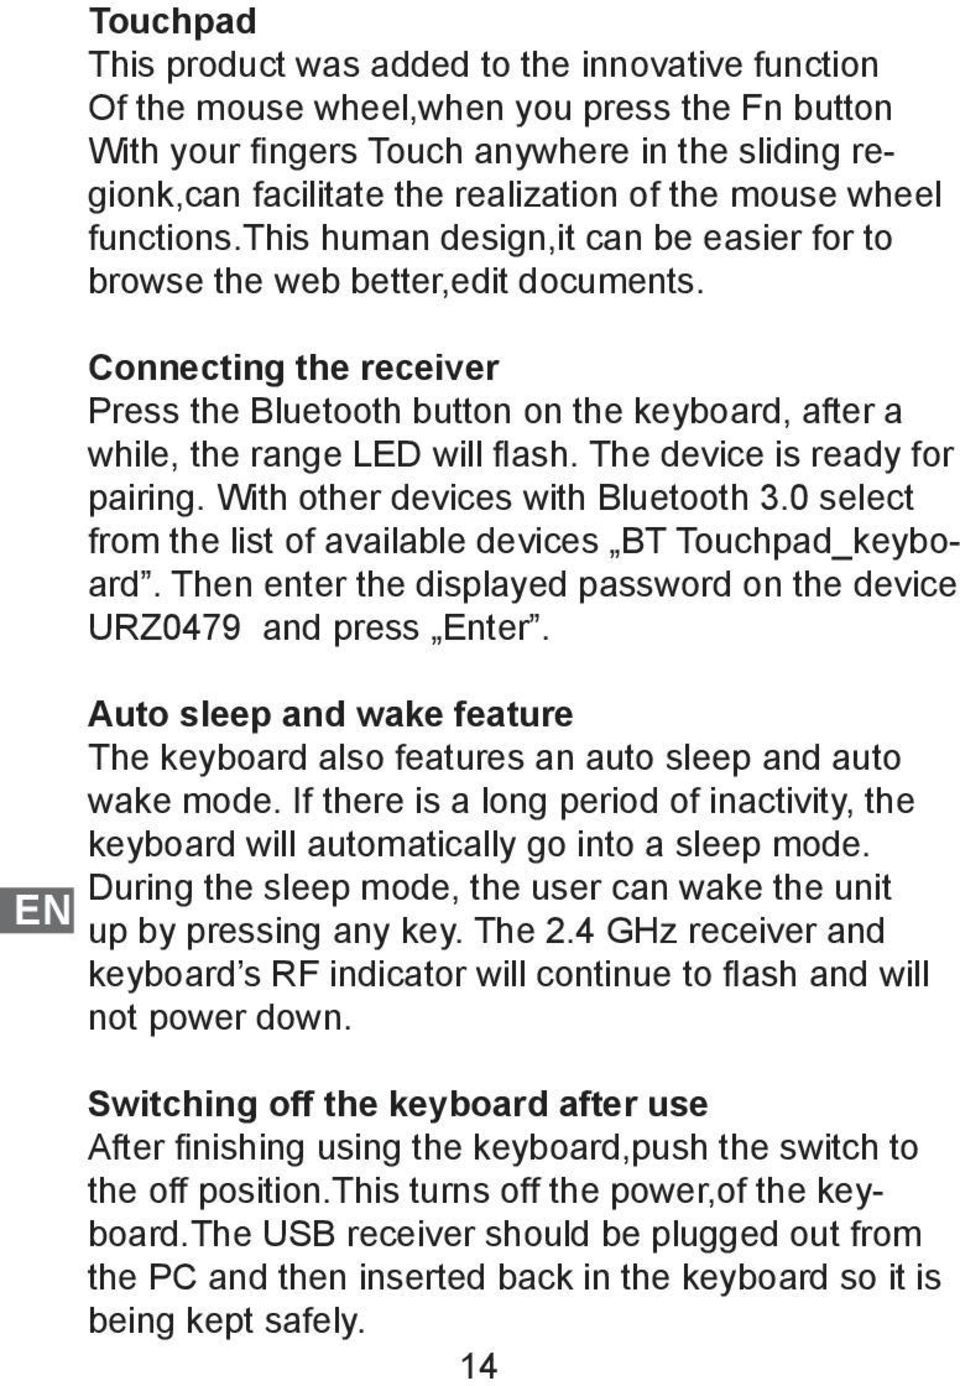 Connecting the receiver Press the Bluetooth button on the keyboard, after a while, the range LED will flash. The device is ready for pairing. With other devices with Bluetooth 3.